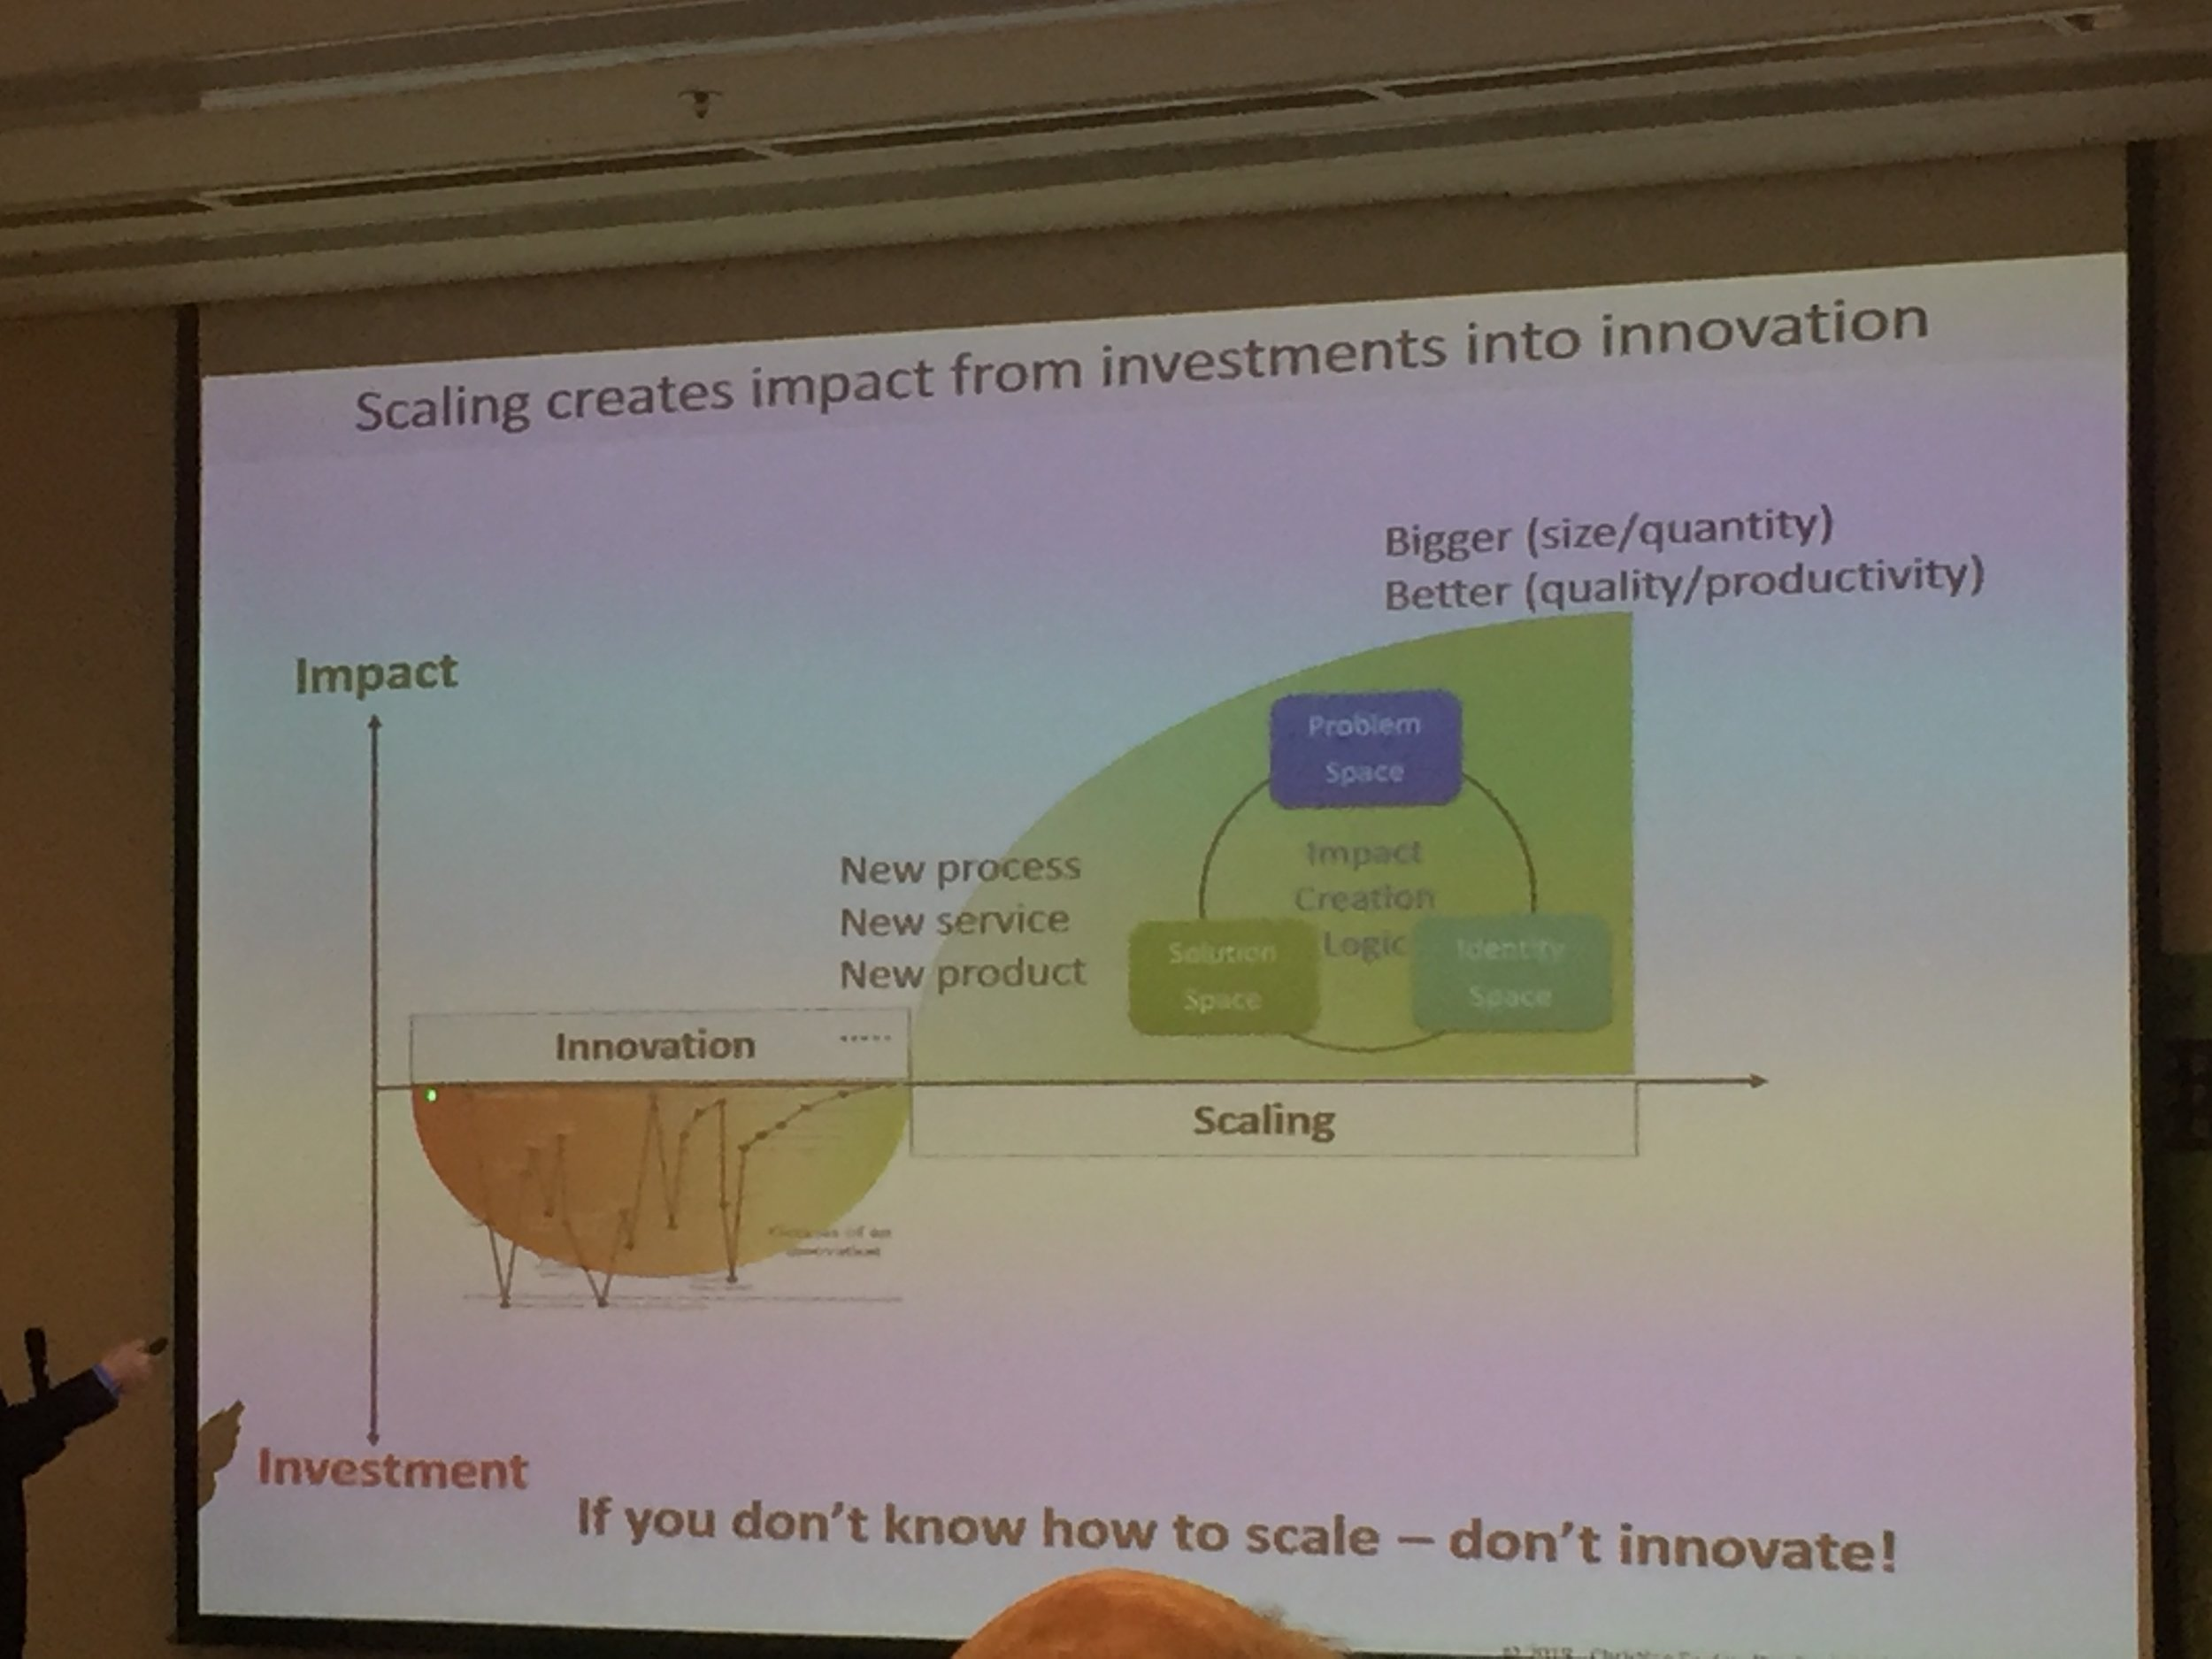 IF you don't know how to scale - don't innovate!!!